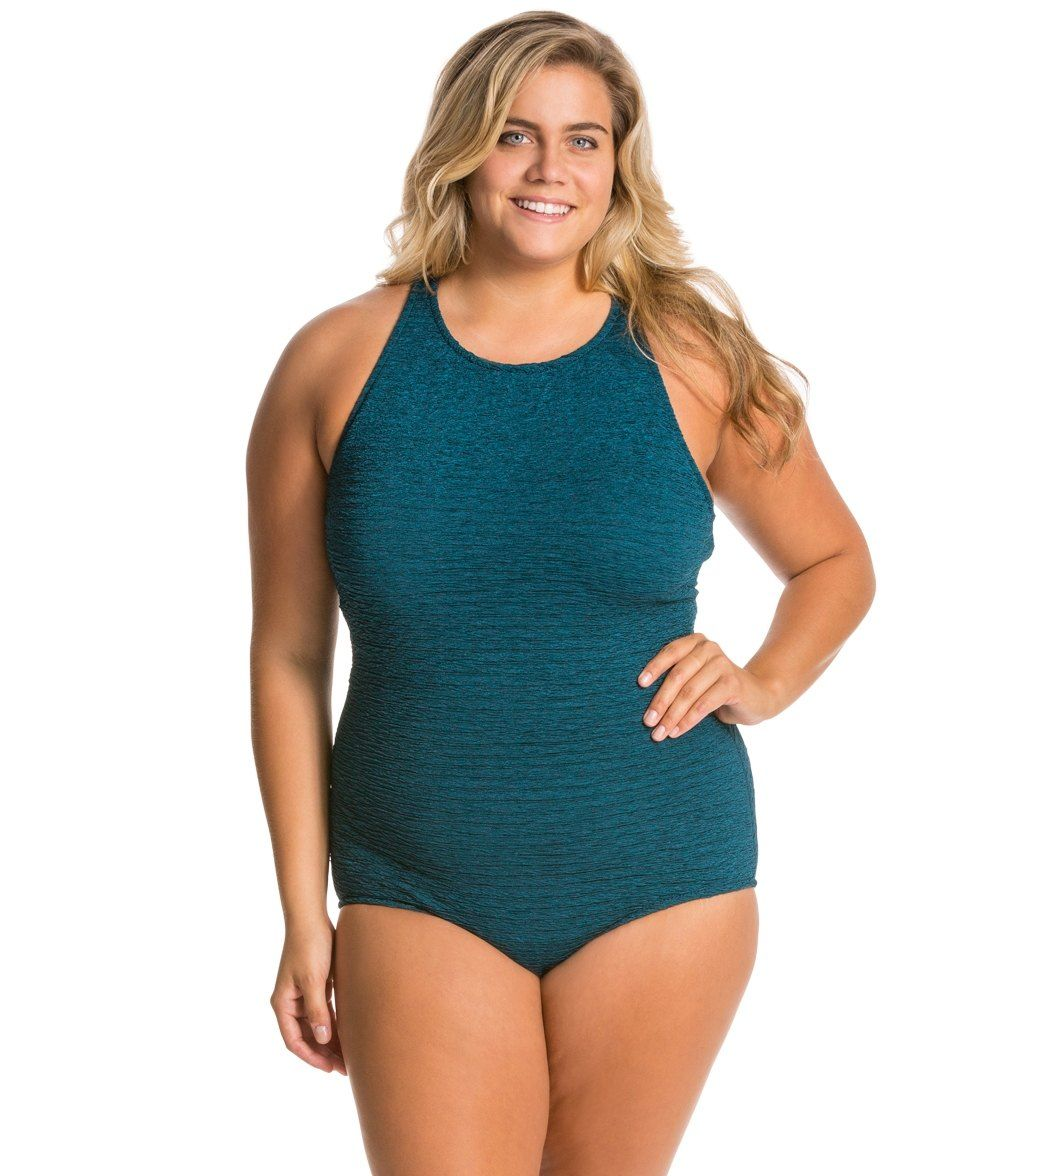 Penbrooke Krinkle Plus Size High Neck Mio Chlorine Resistant One Piece at SwimOutlet.com - The Web's most popular swim shop